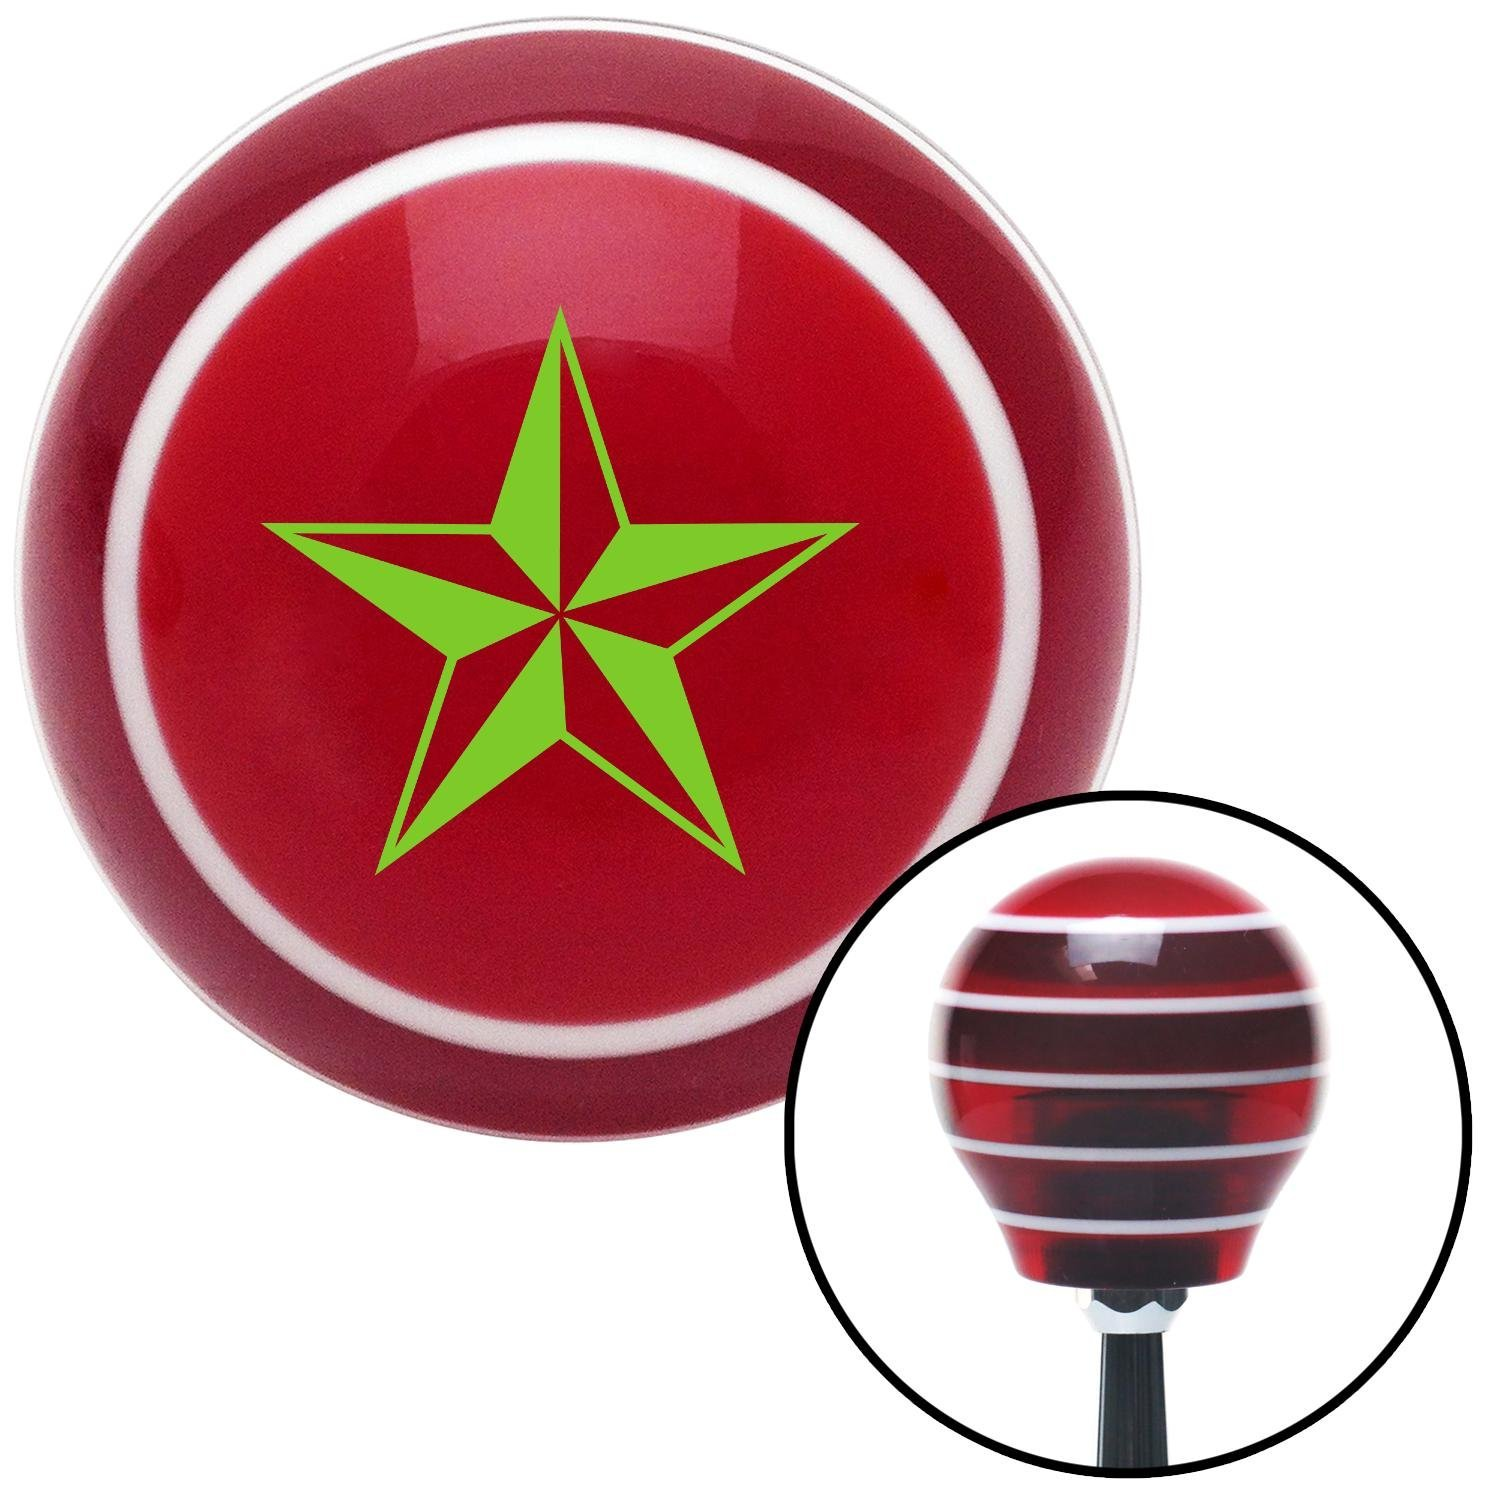 Green 5 Point 3-D Star American Shifter 118890 Red Stripe Shift Knob with M16 x 1.5 Insert